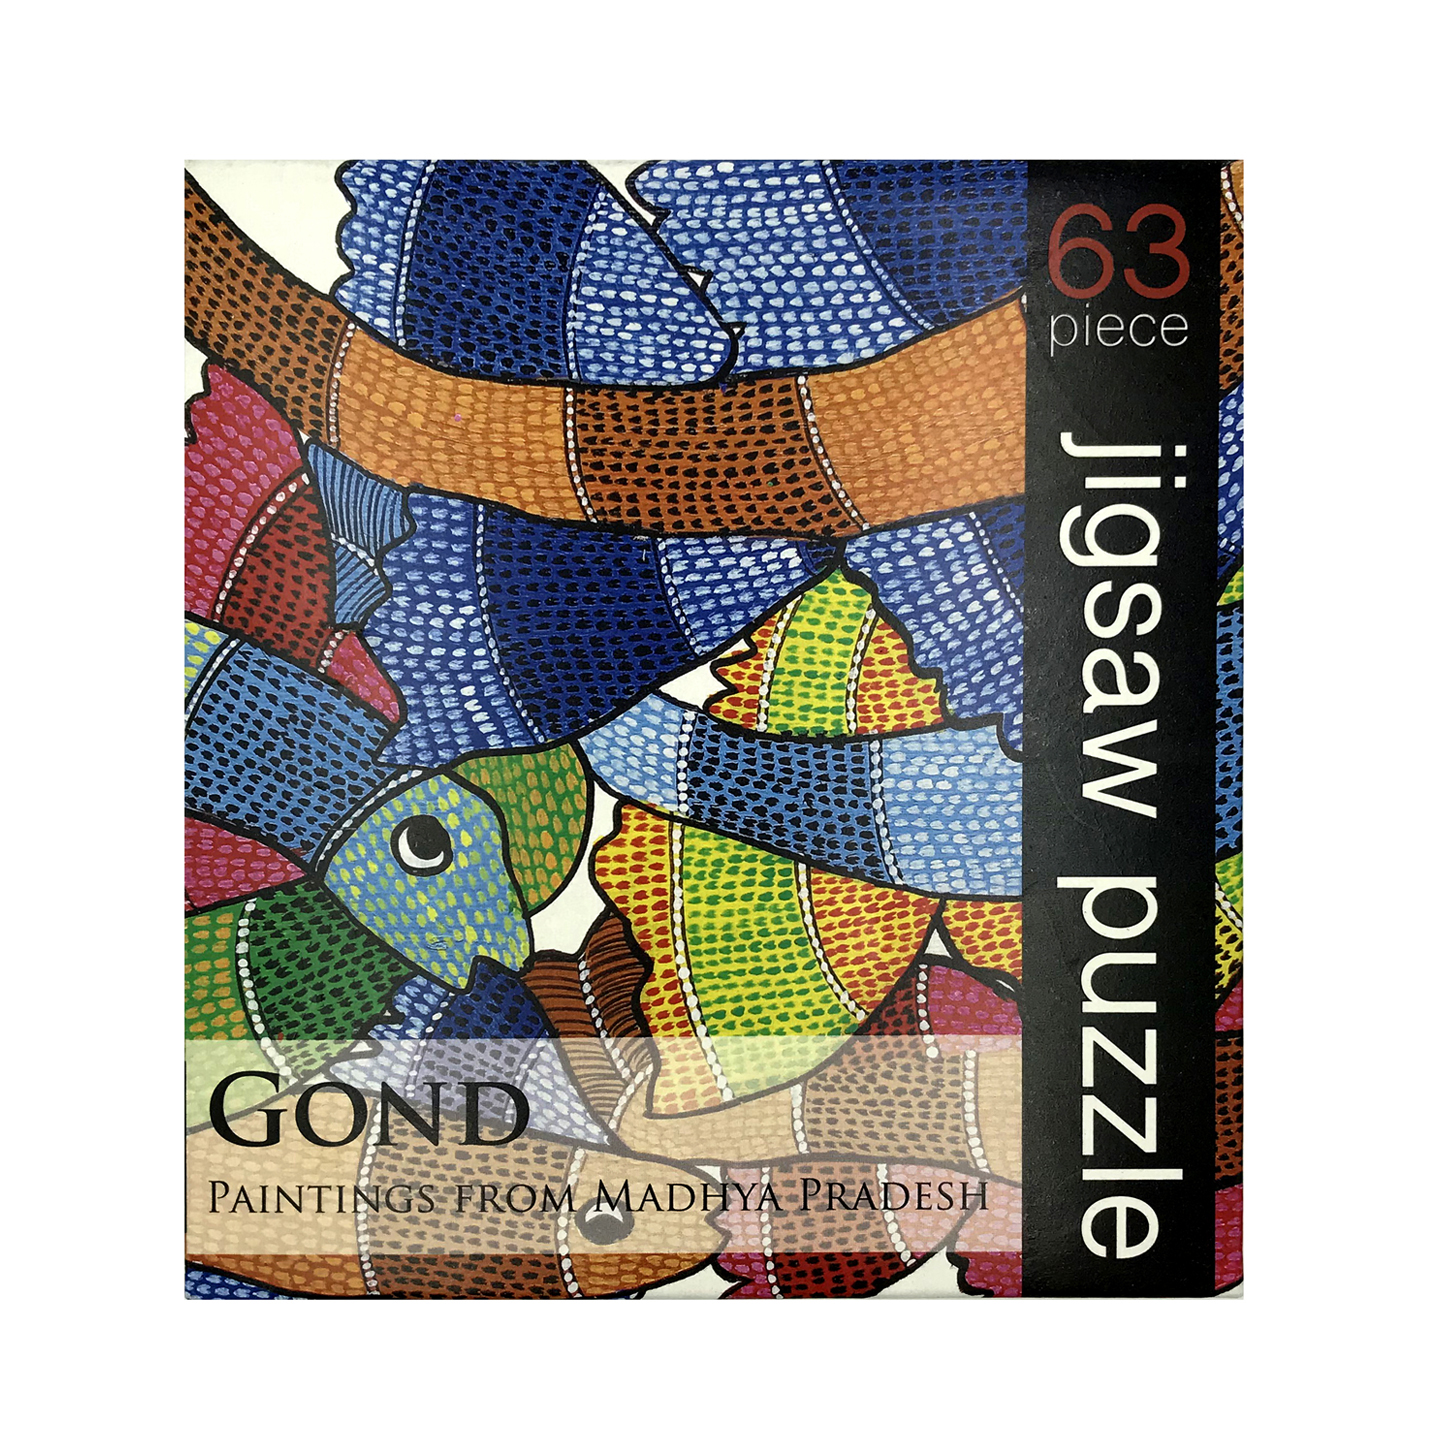 JIGSAW PUZZLE 63 PC - Gond